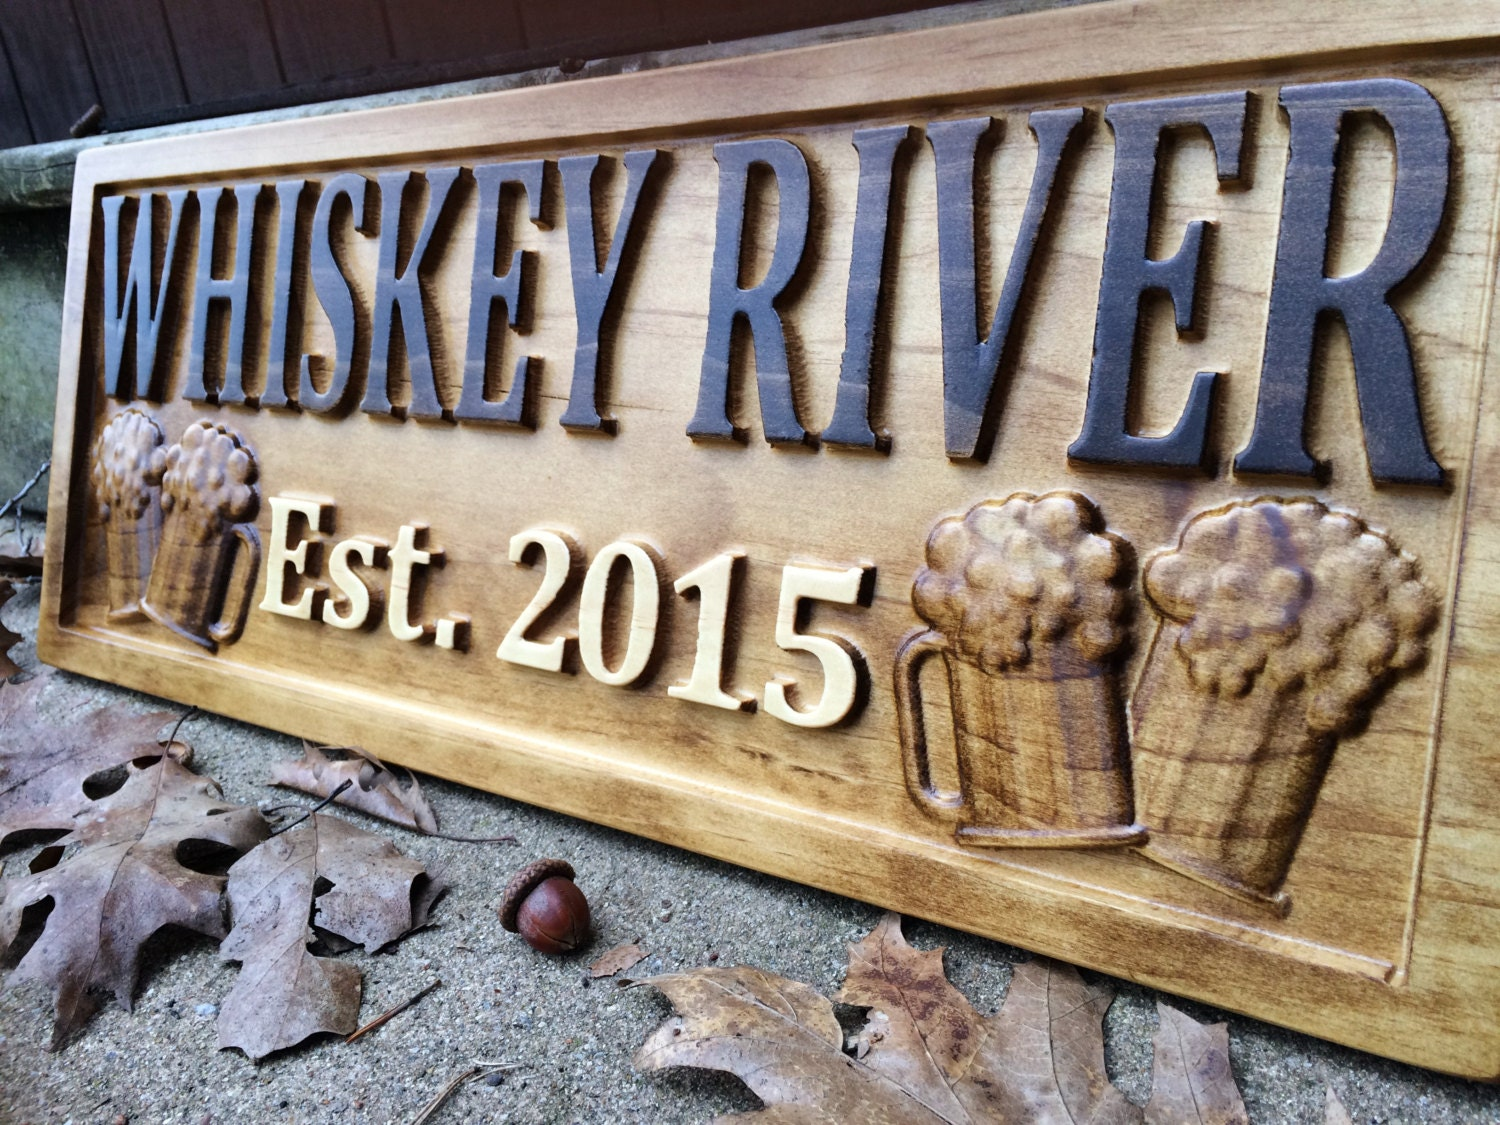 Personalized Bar Sign Carved Wood Sign Custom Wood Sign Personalized Wood Sign Groomsmen Gift Cabin Man Cave Pub Bar Decor Rustic Home Decor